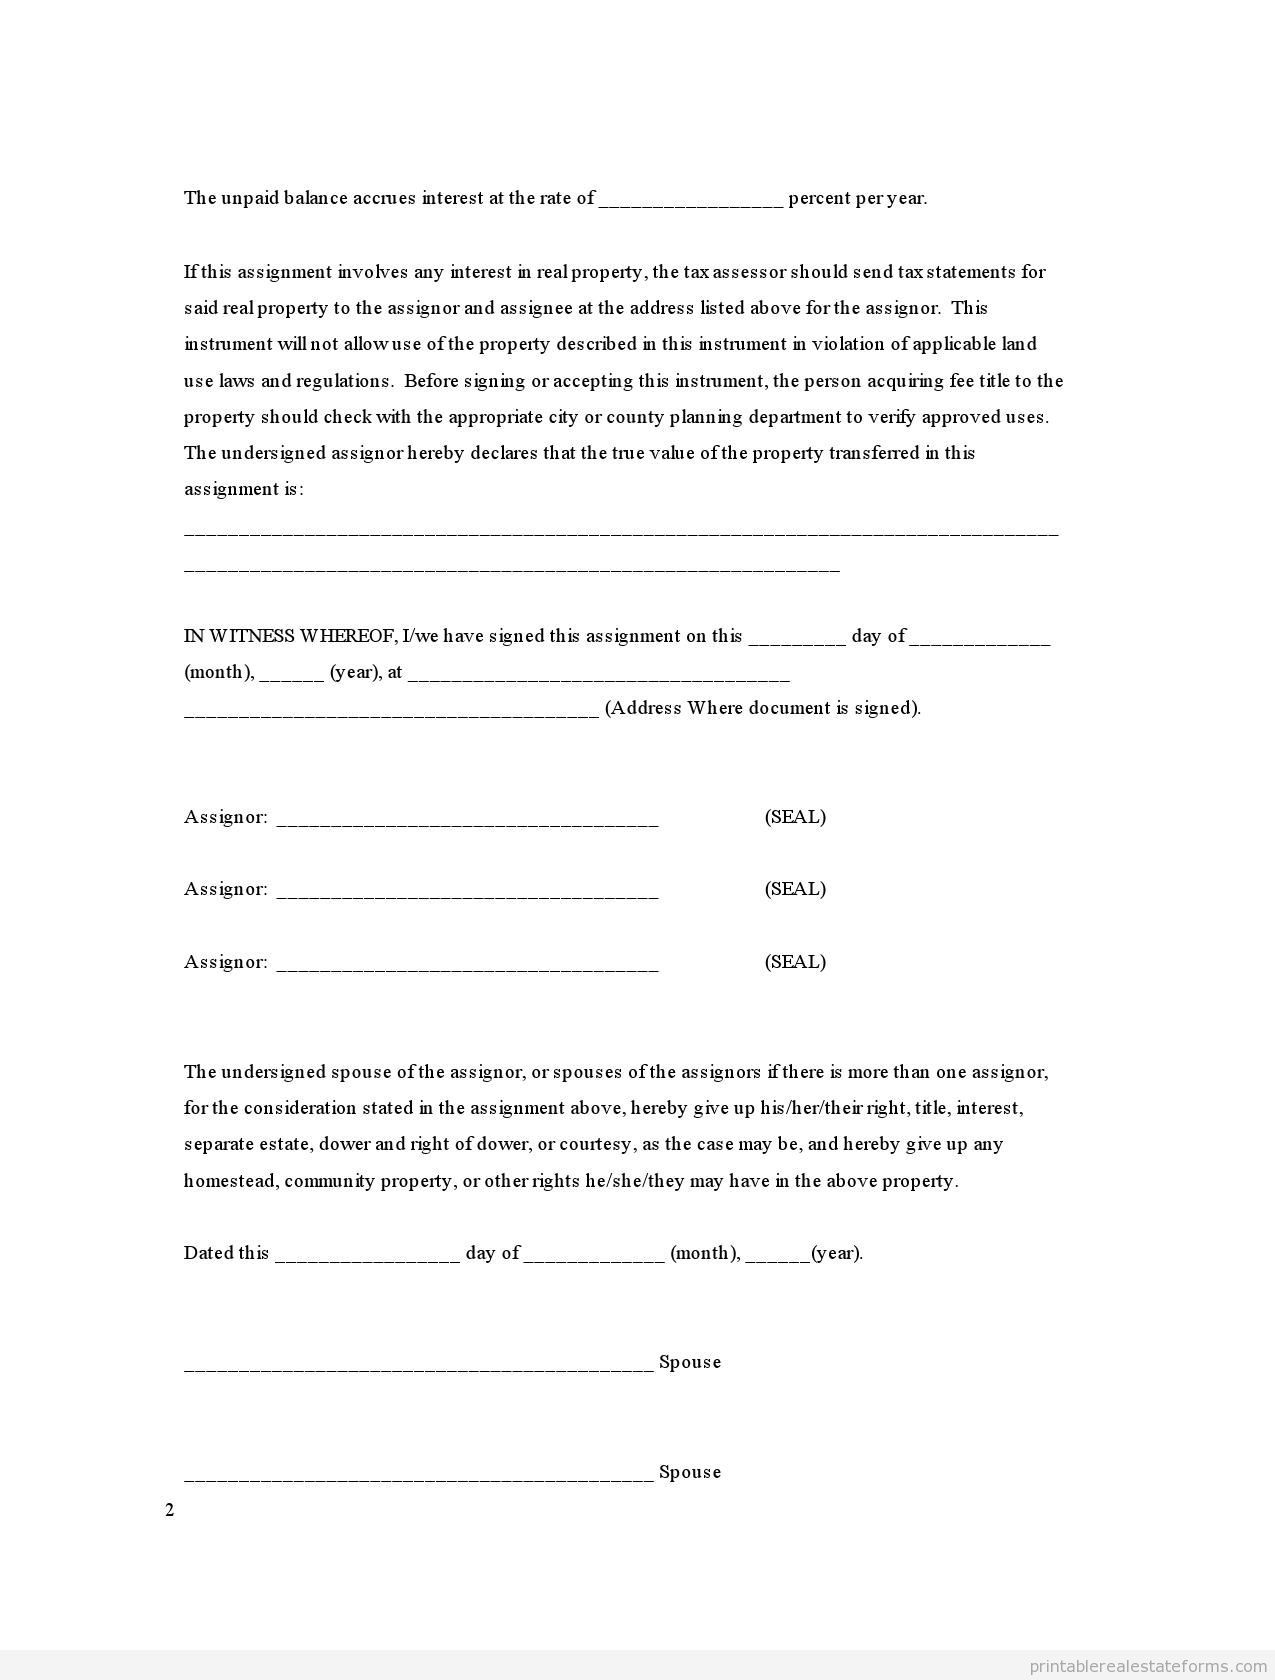 printable assignment joint ownership right of survivorship forms for joint ownership legalshield right of survivorship form right of survivorship forms editable sample blank template